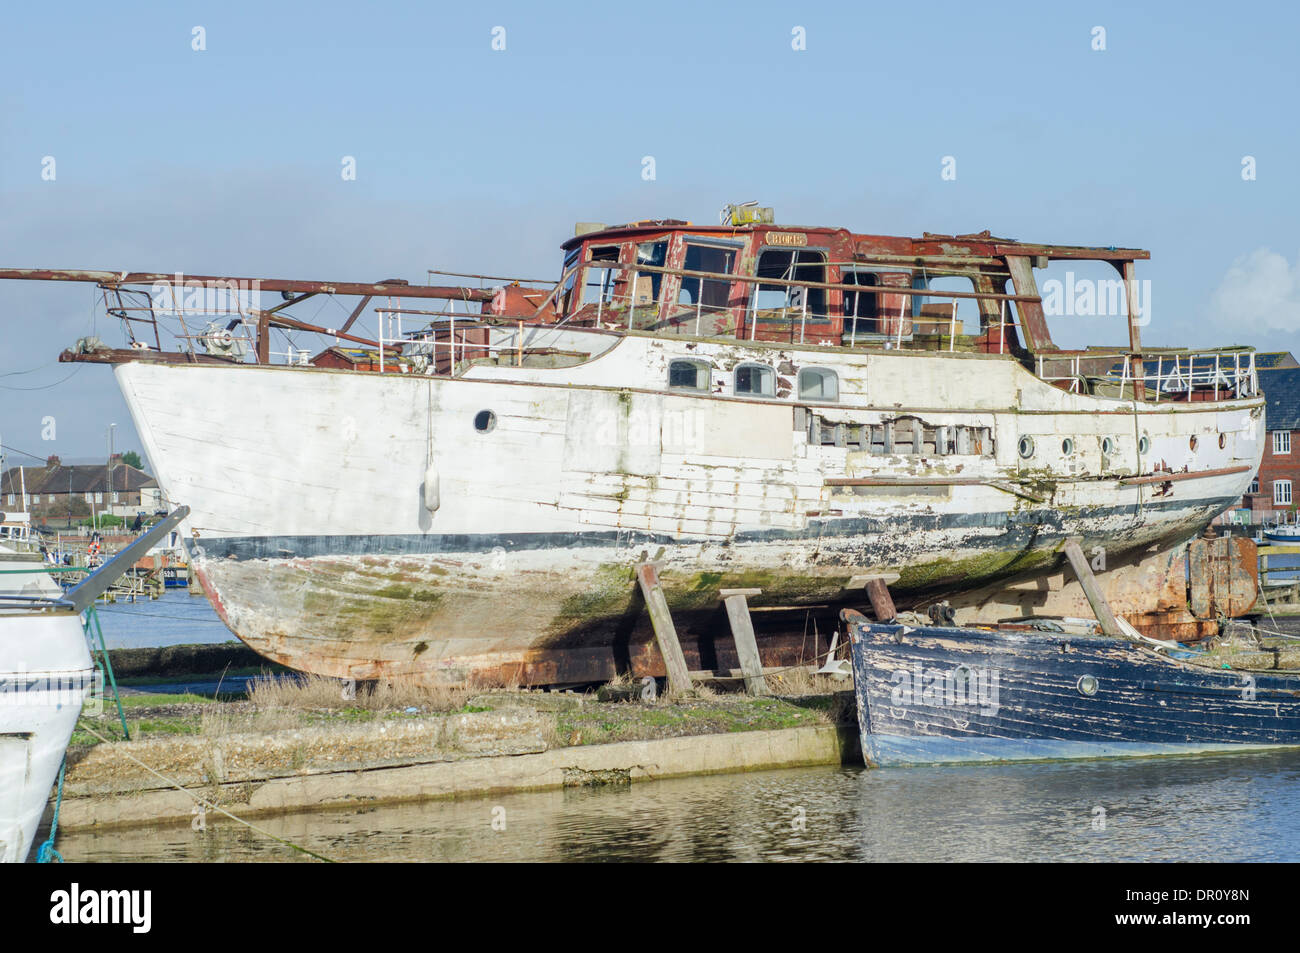 a-wooden-decaying-boat-out-of-the-water-by-a-river-DR0Y8N.jpg